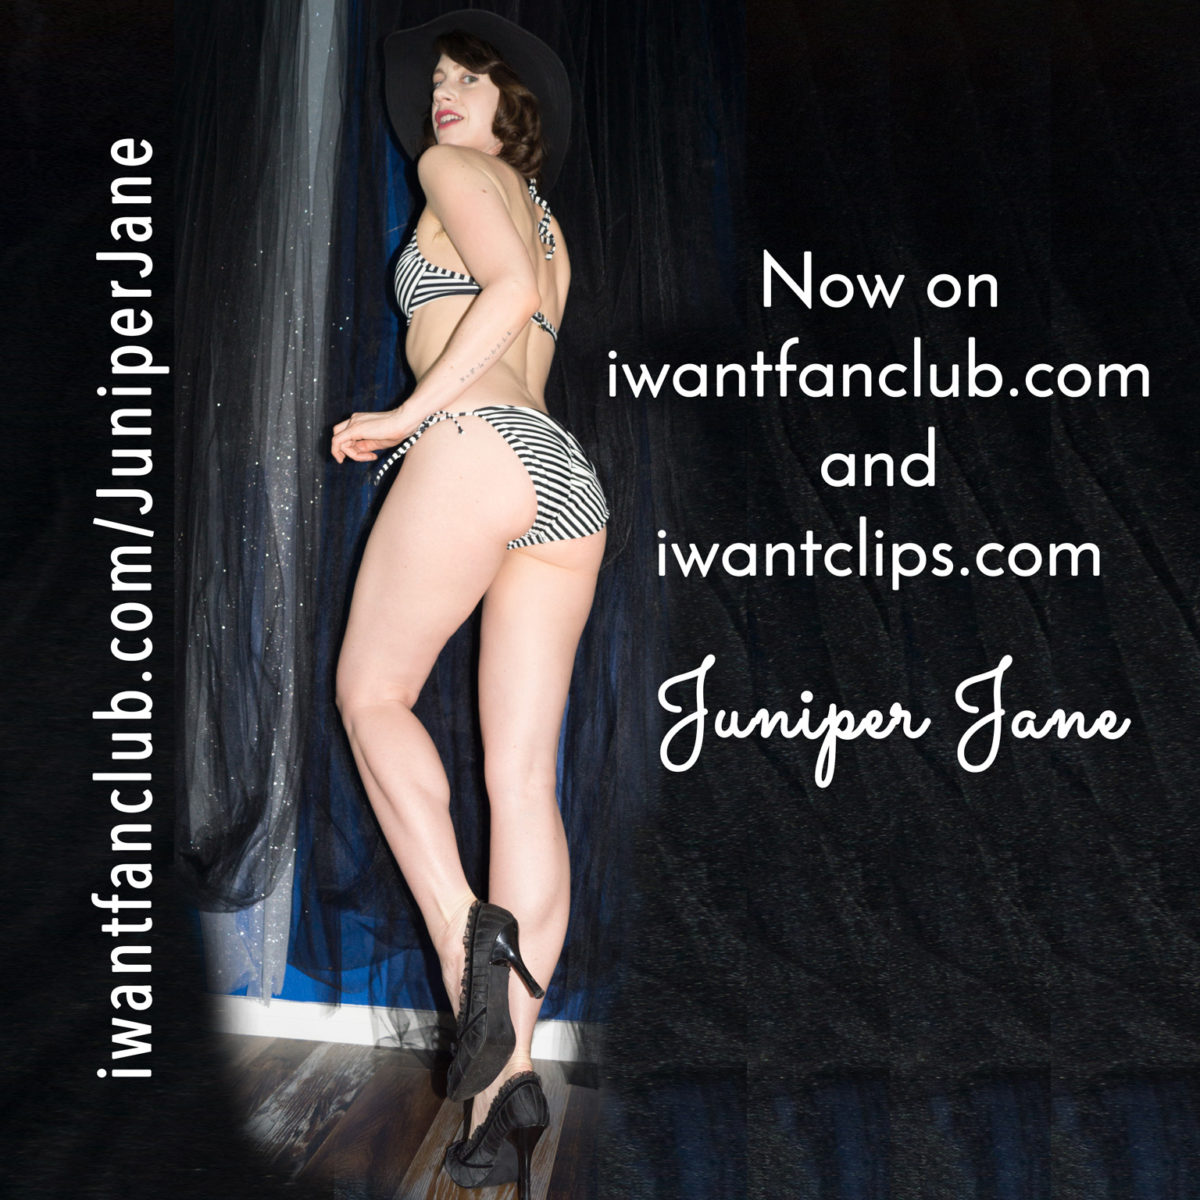 Juniper Jane's NEW CLIP STORE AND FAN CLUB!